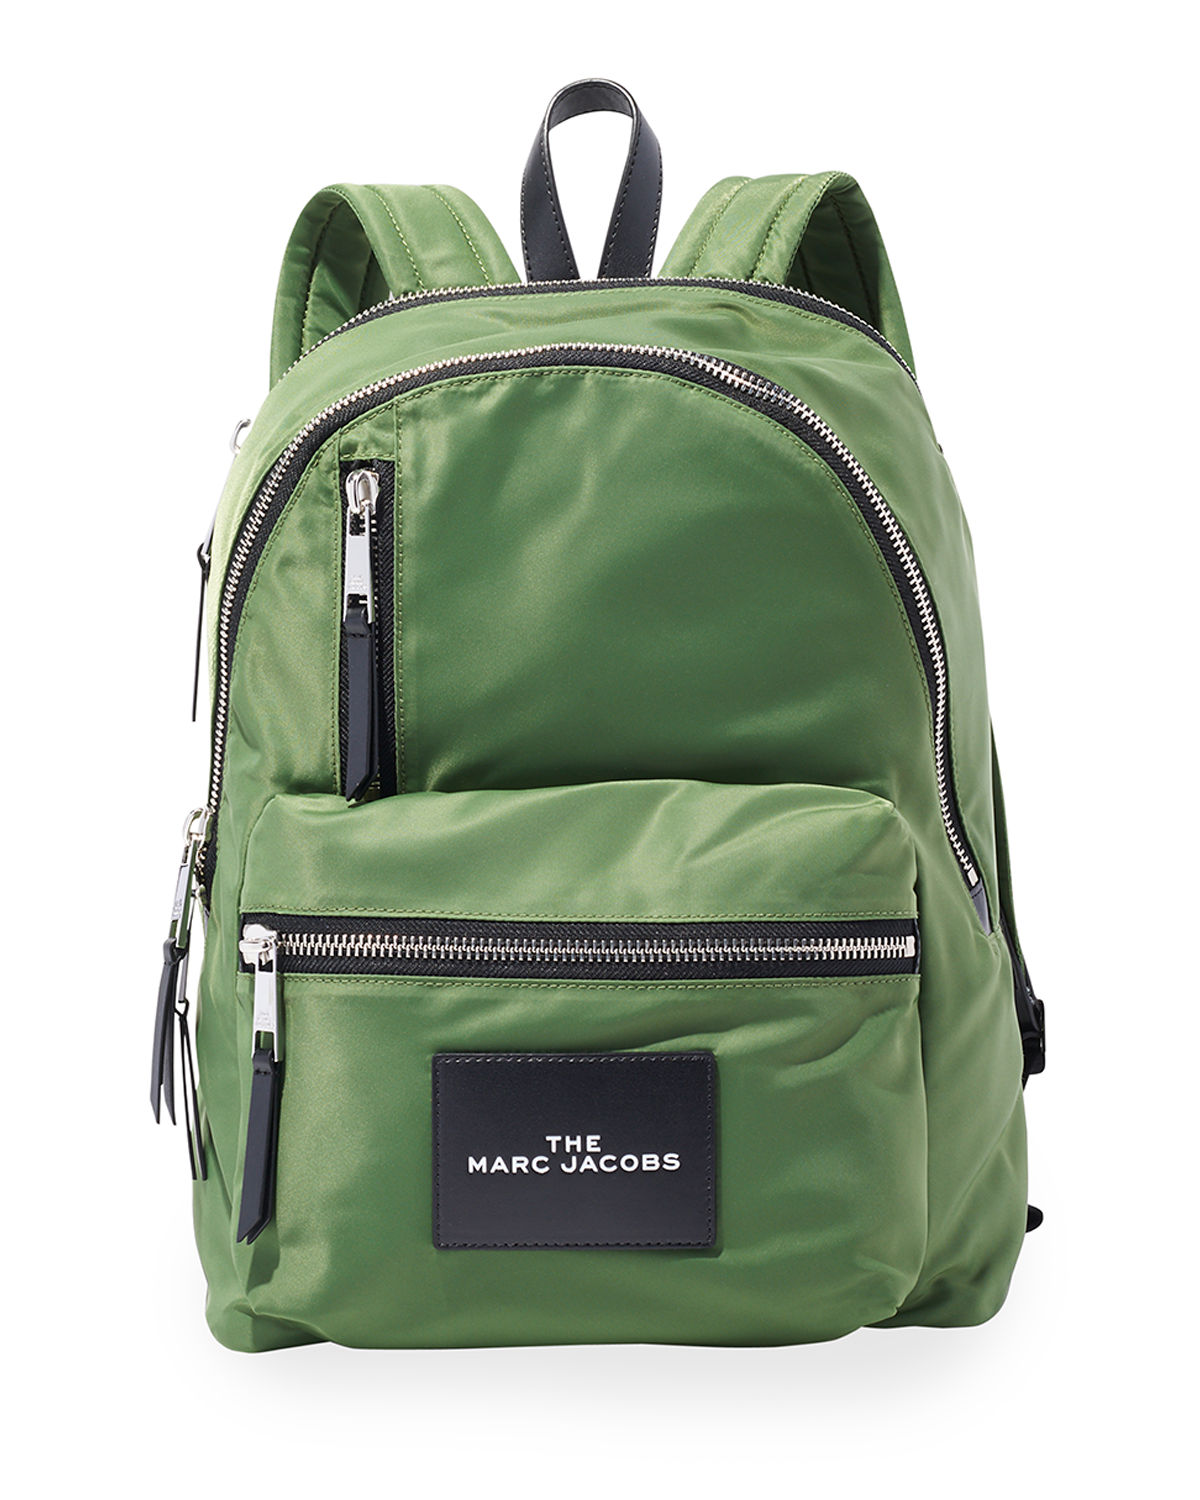 The Pouch Nylon Backpack